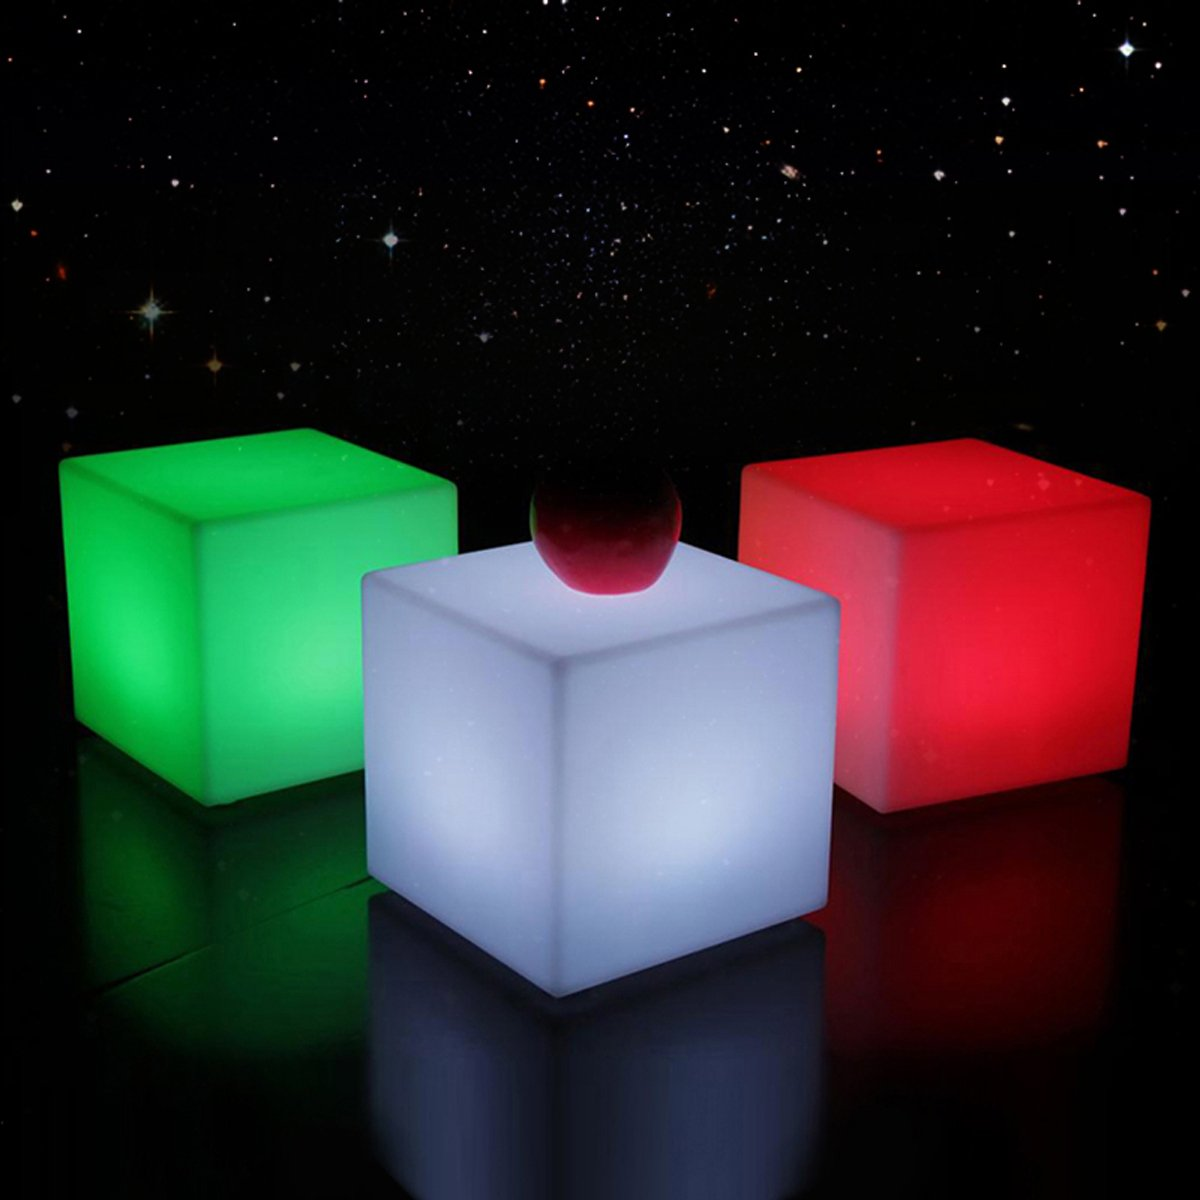 IVG-2020 Colored Lights LED Cube Squaru Quartet Decorative Table Lamp Charging Remote Control IP54 Waterproof Outdoor Garden Party Christmas Decorations (8 inch)